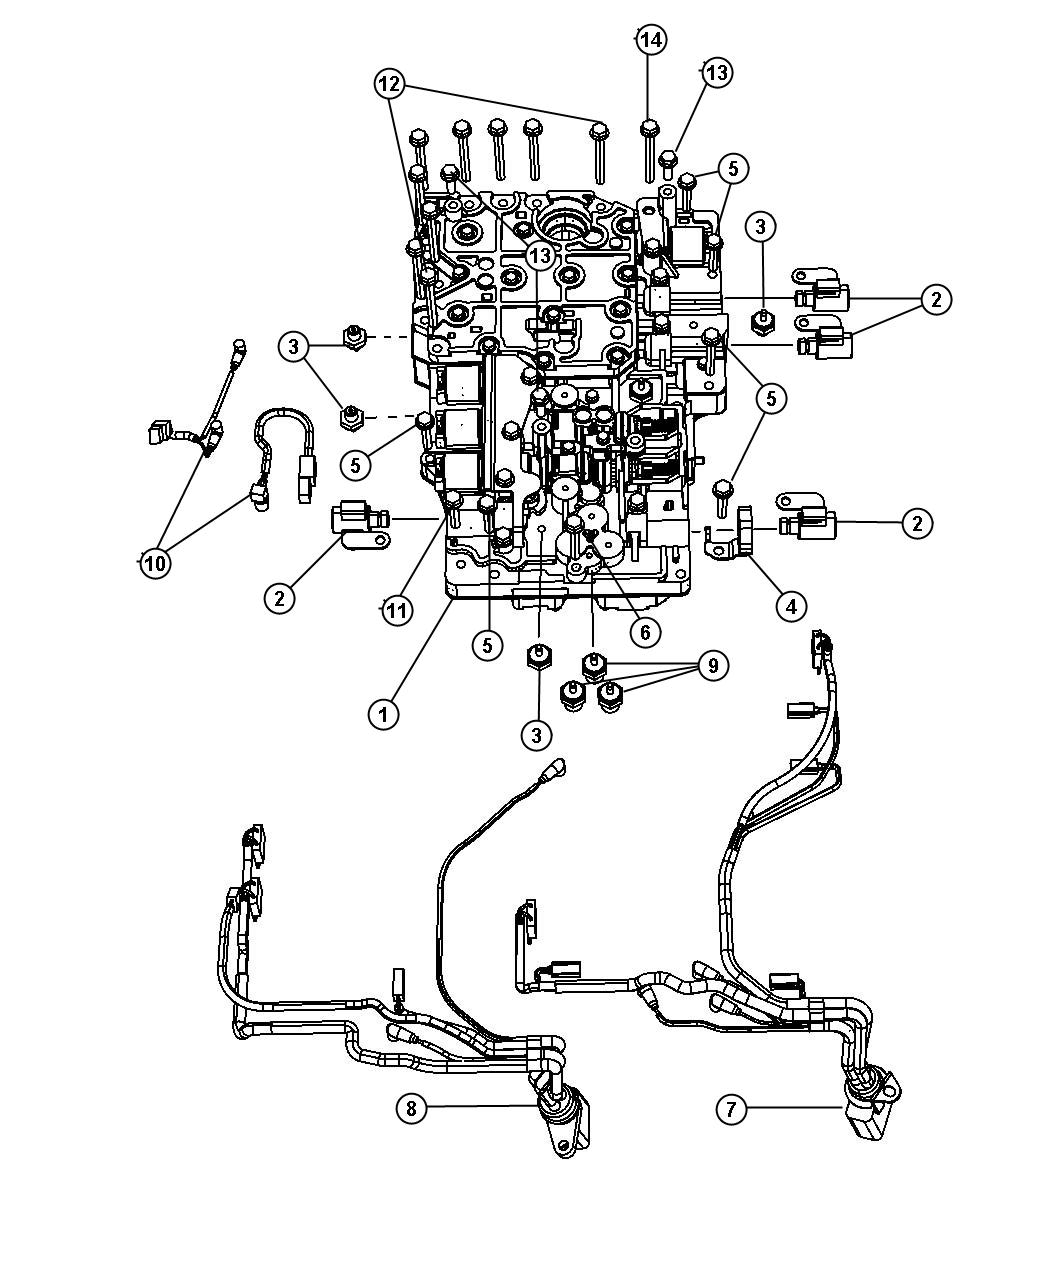 [DIAGRAM] Dodge Ram Transmission Wiring Diagram Archives